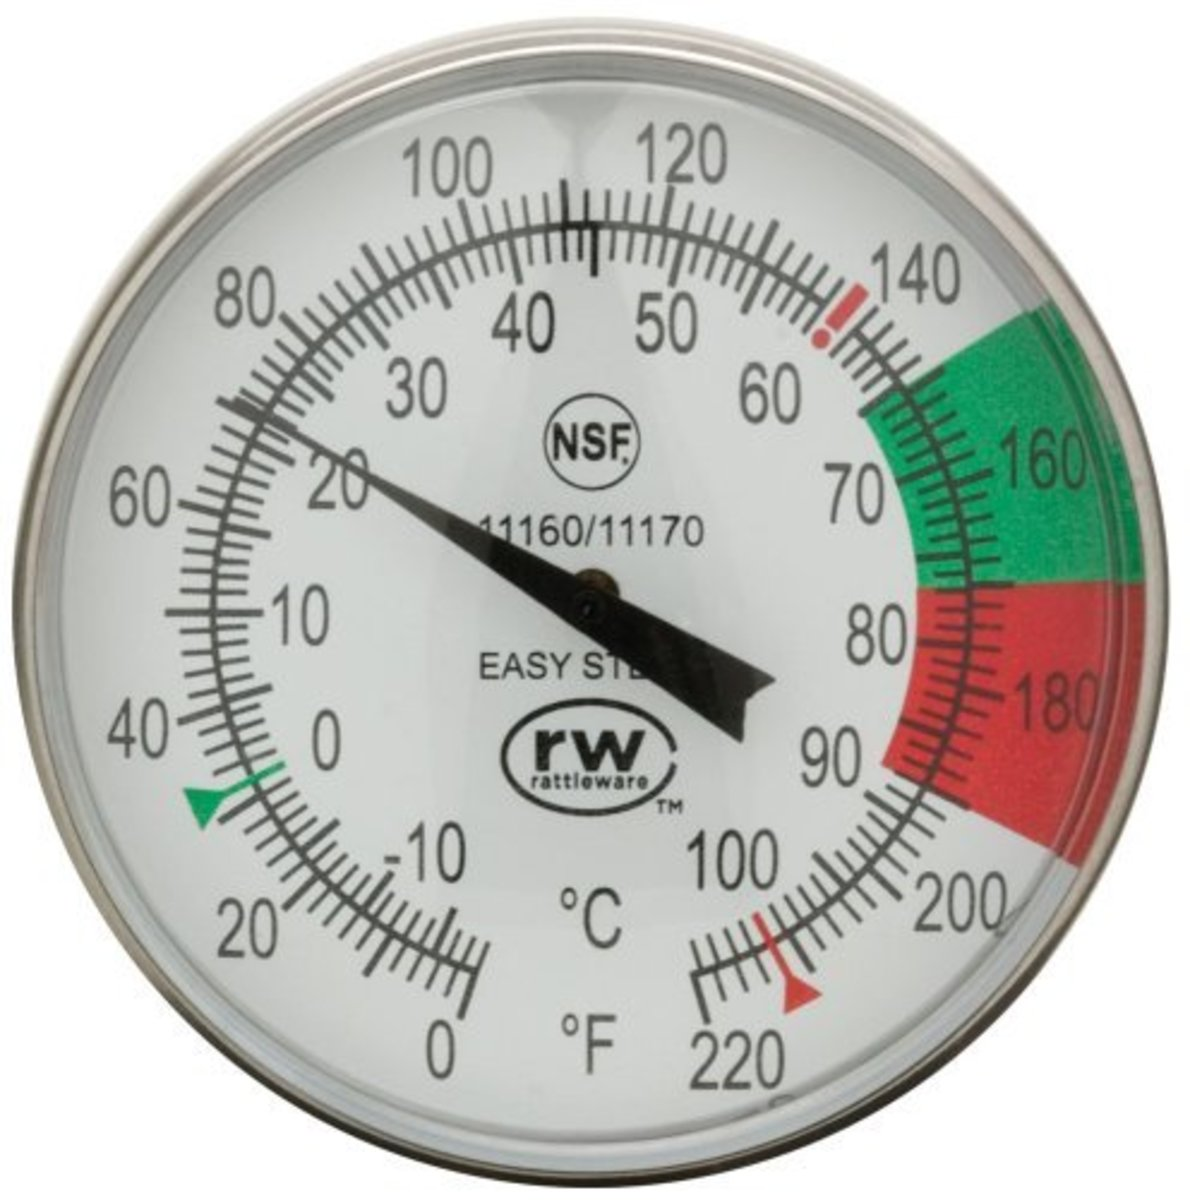 The Rattleware 5-Inch Easy Steam Thermometer is perfect for medium and large sized pitchers.  It has a long clip to hold the thermometer firmly in place and the dial is very easy to read, with green and red zones, as well measurements in both F and C